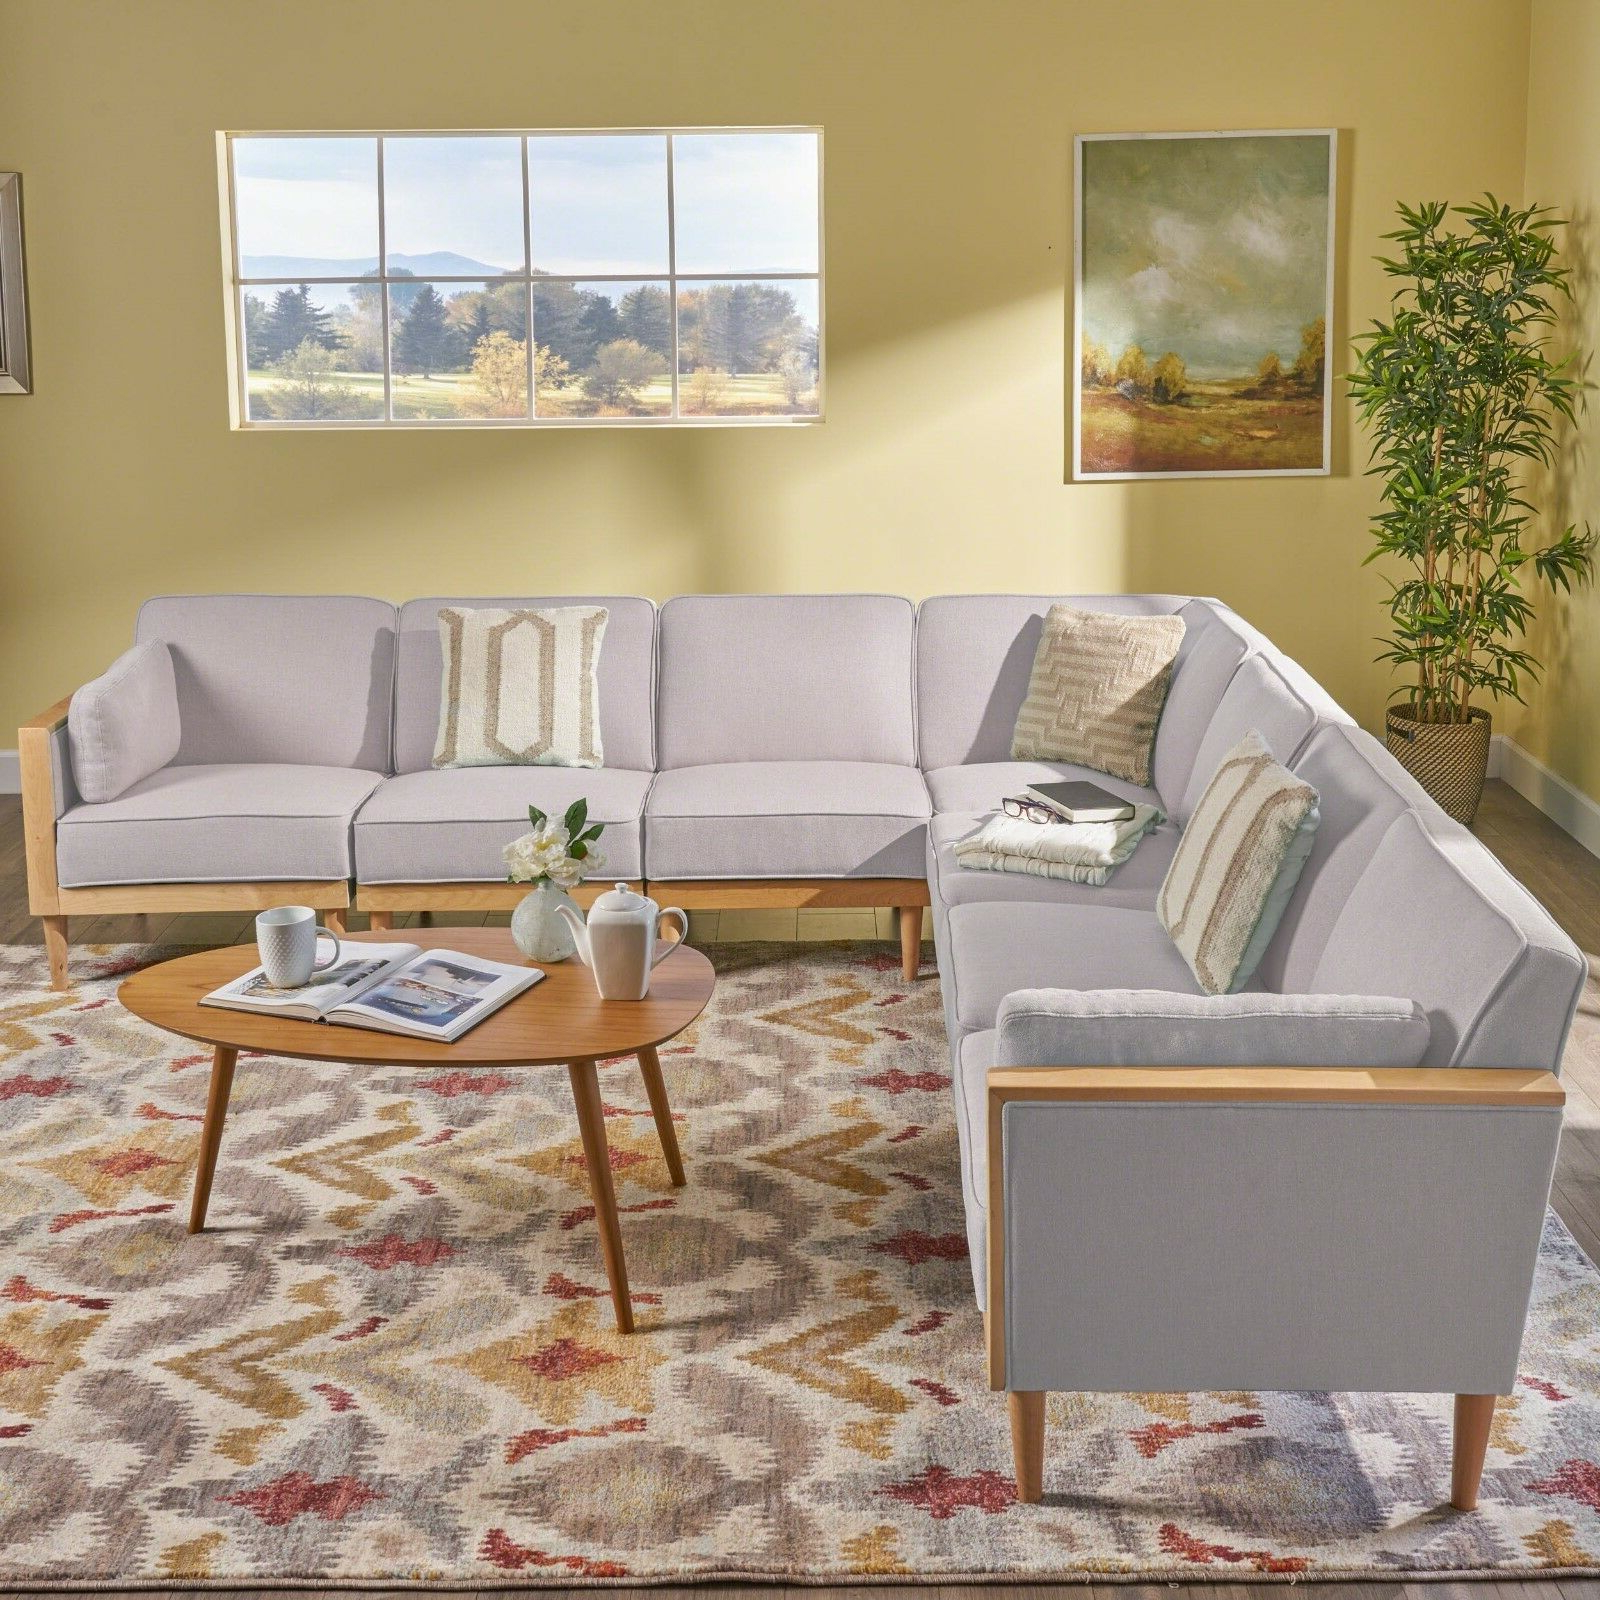 Well Liked Tegan Patio Sofas With Cushions Intended For Tegan 7 Piece Mid Century Deep Seating Sectional Sofa Set, With Piped Cushions (View 22 of 25)